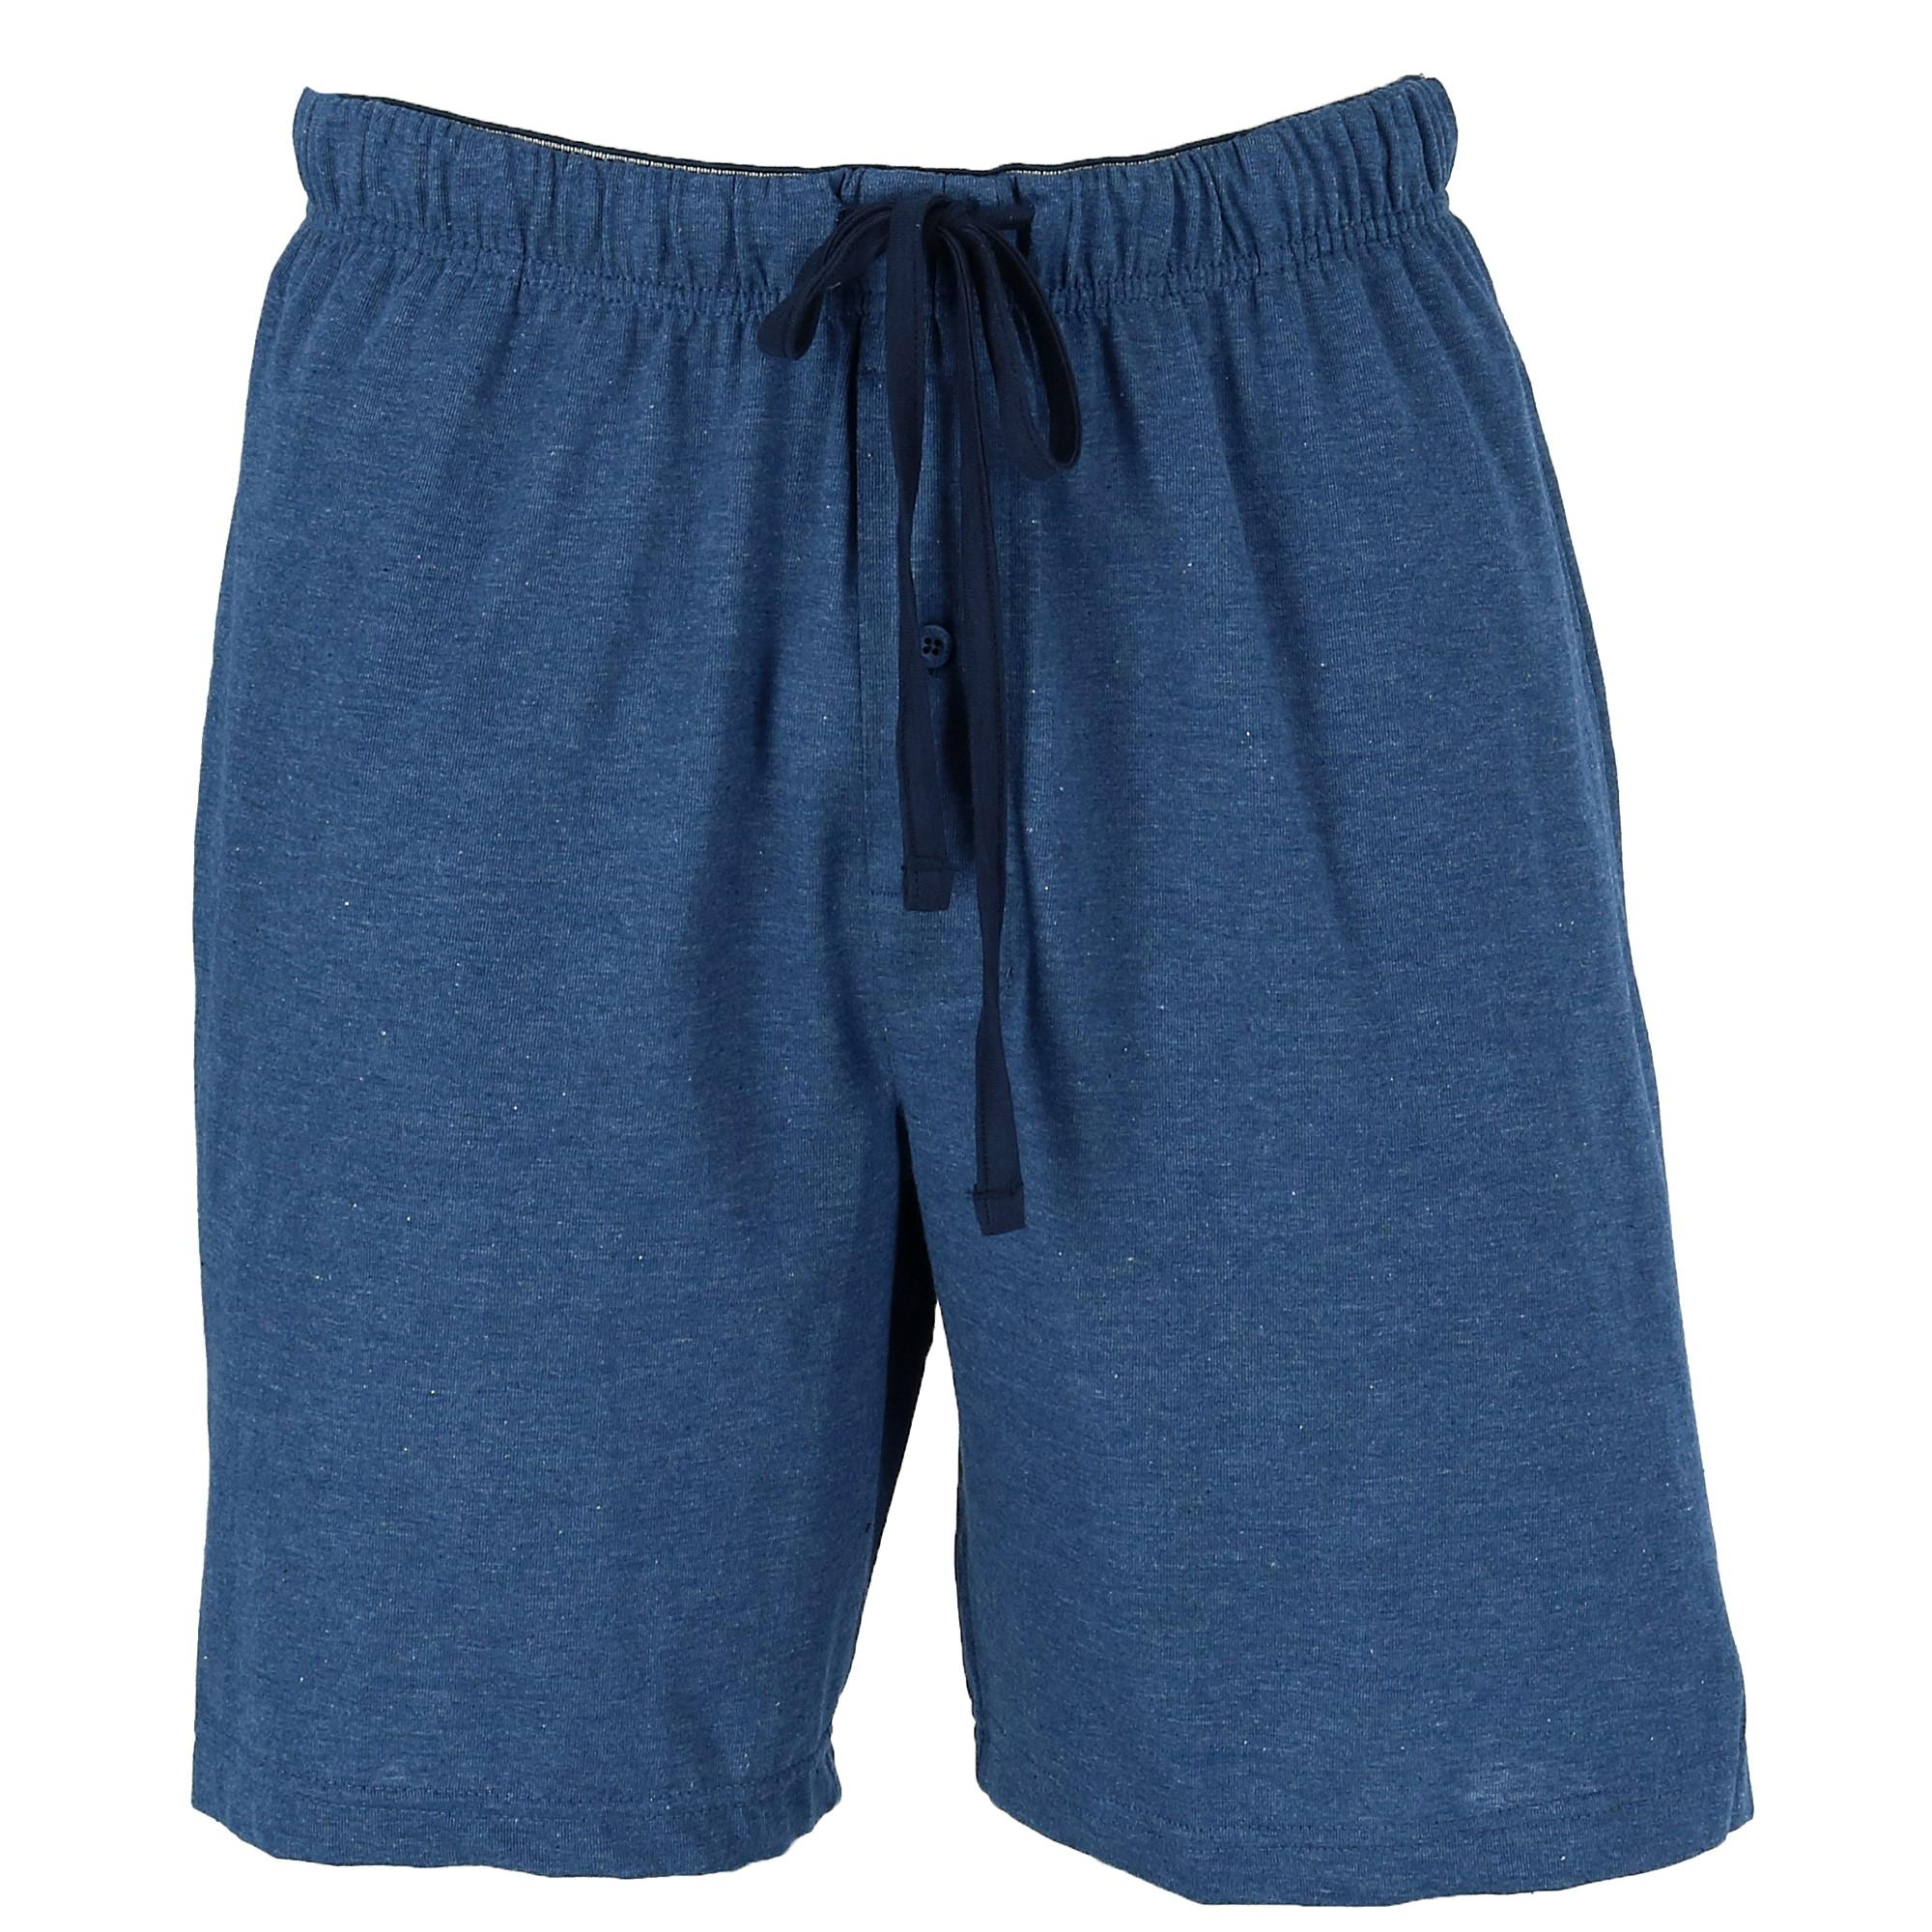 Men's Sleep Shorts. When it comes to sleepwear for men, there are many options, and choices vary from pajama pants to shorts to pajama sets.